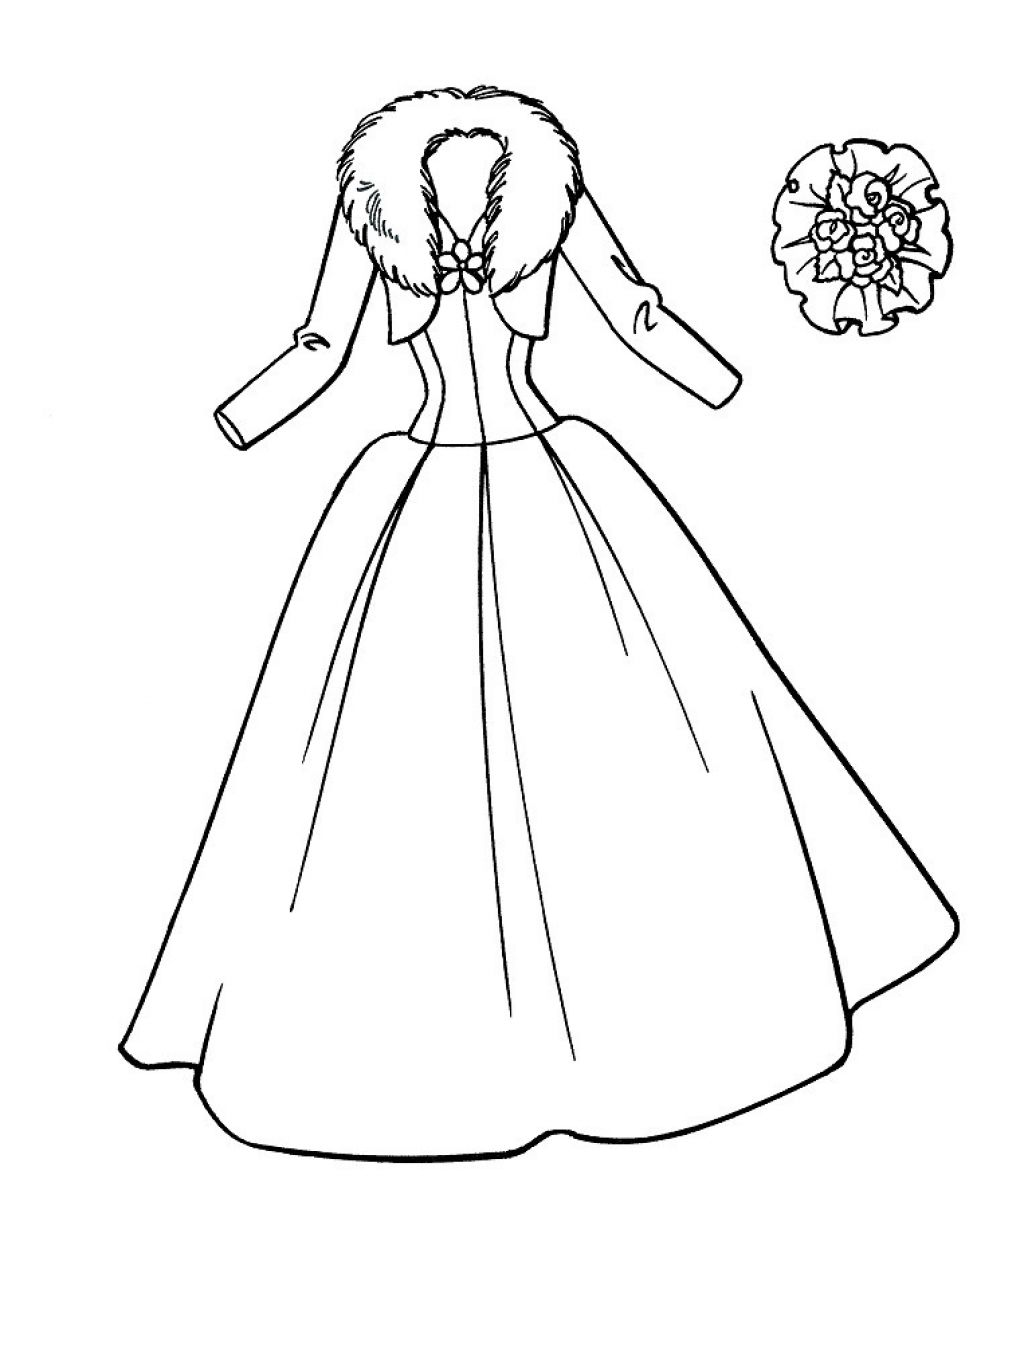 1024x1367 Printable Wedding Dress Coloring Pages For Girls